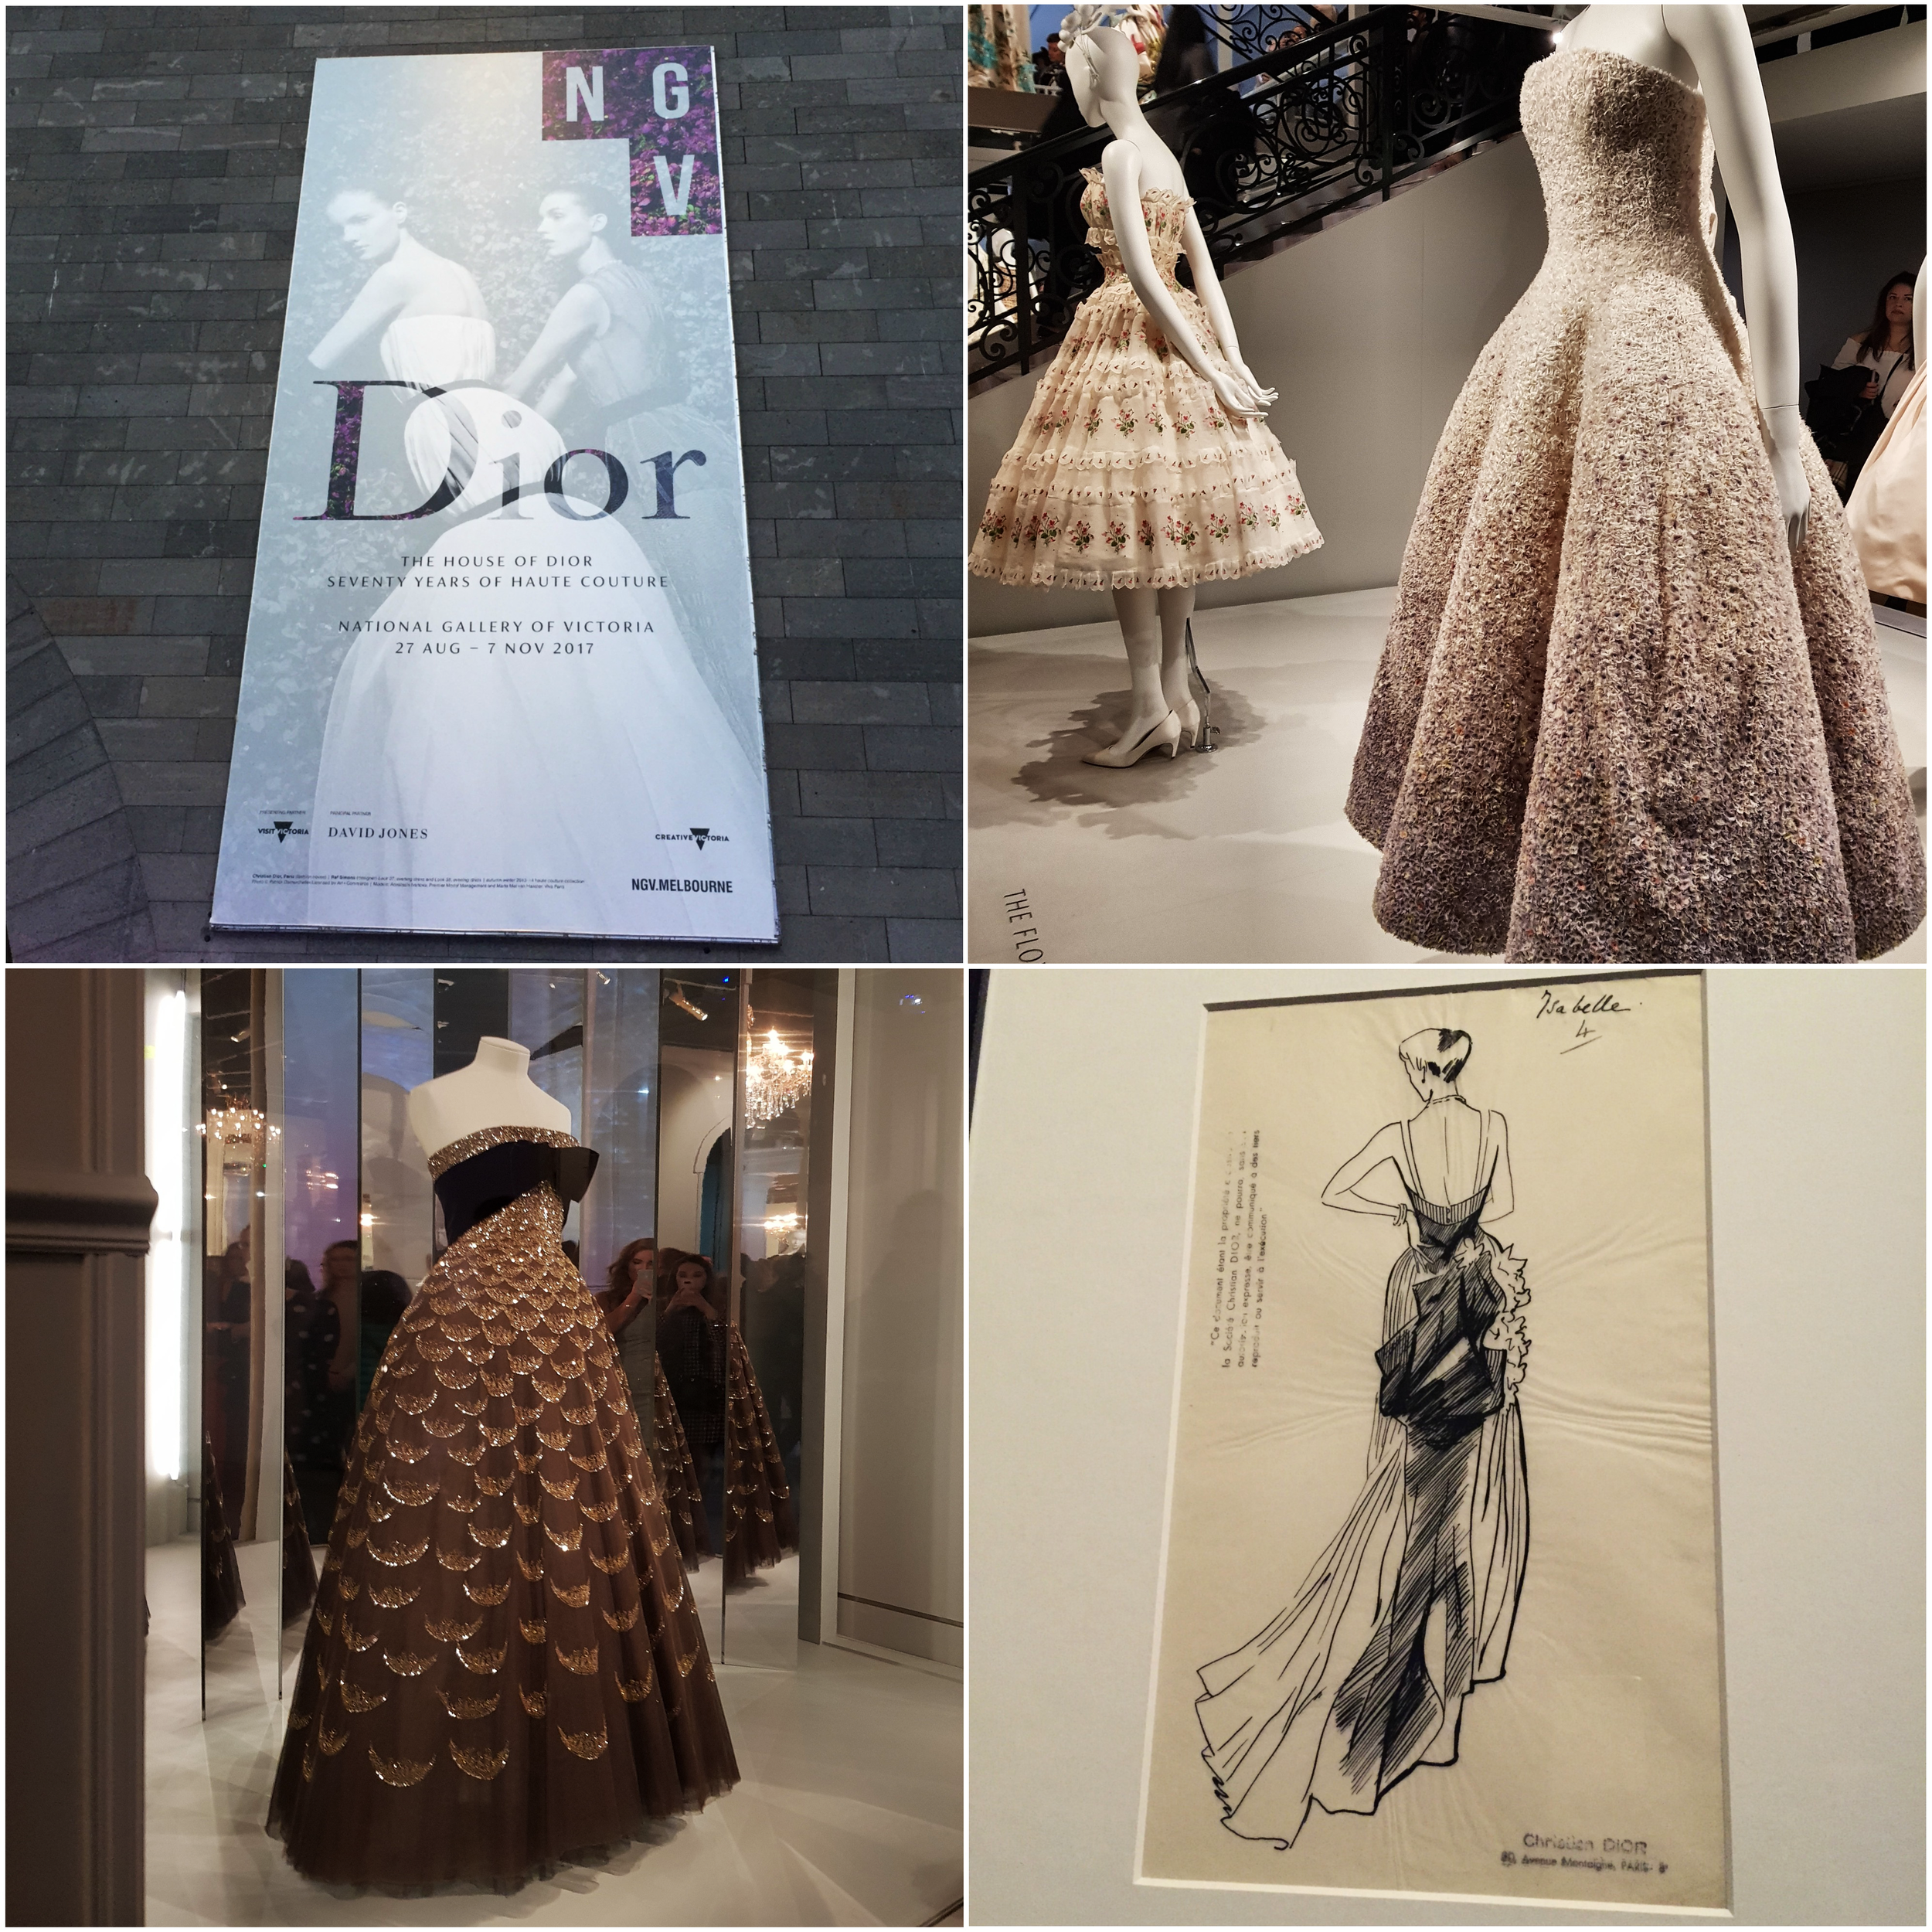 We finished our first frantic day with a sparkle in our eyes, enjoying the glittering Dior exhibition held at the National Gallery of Victoria.